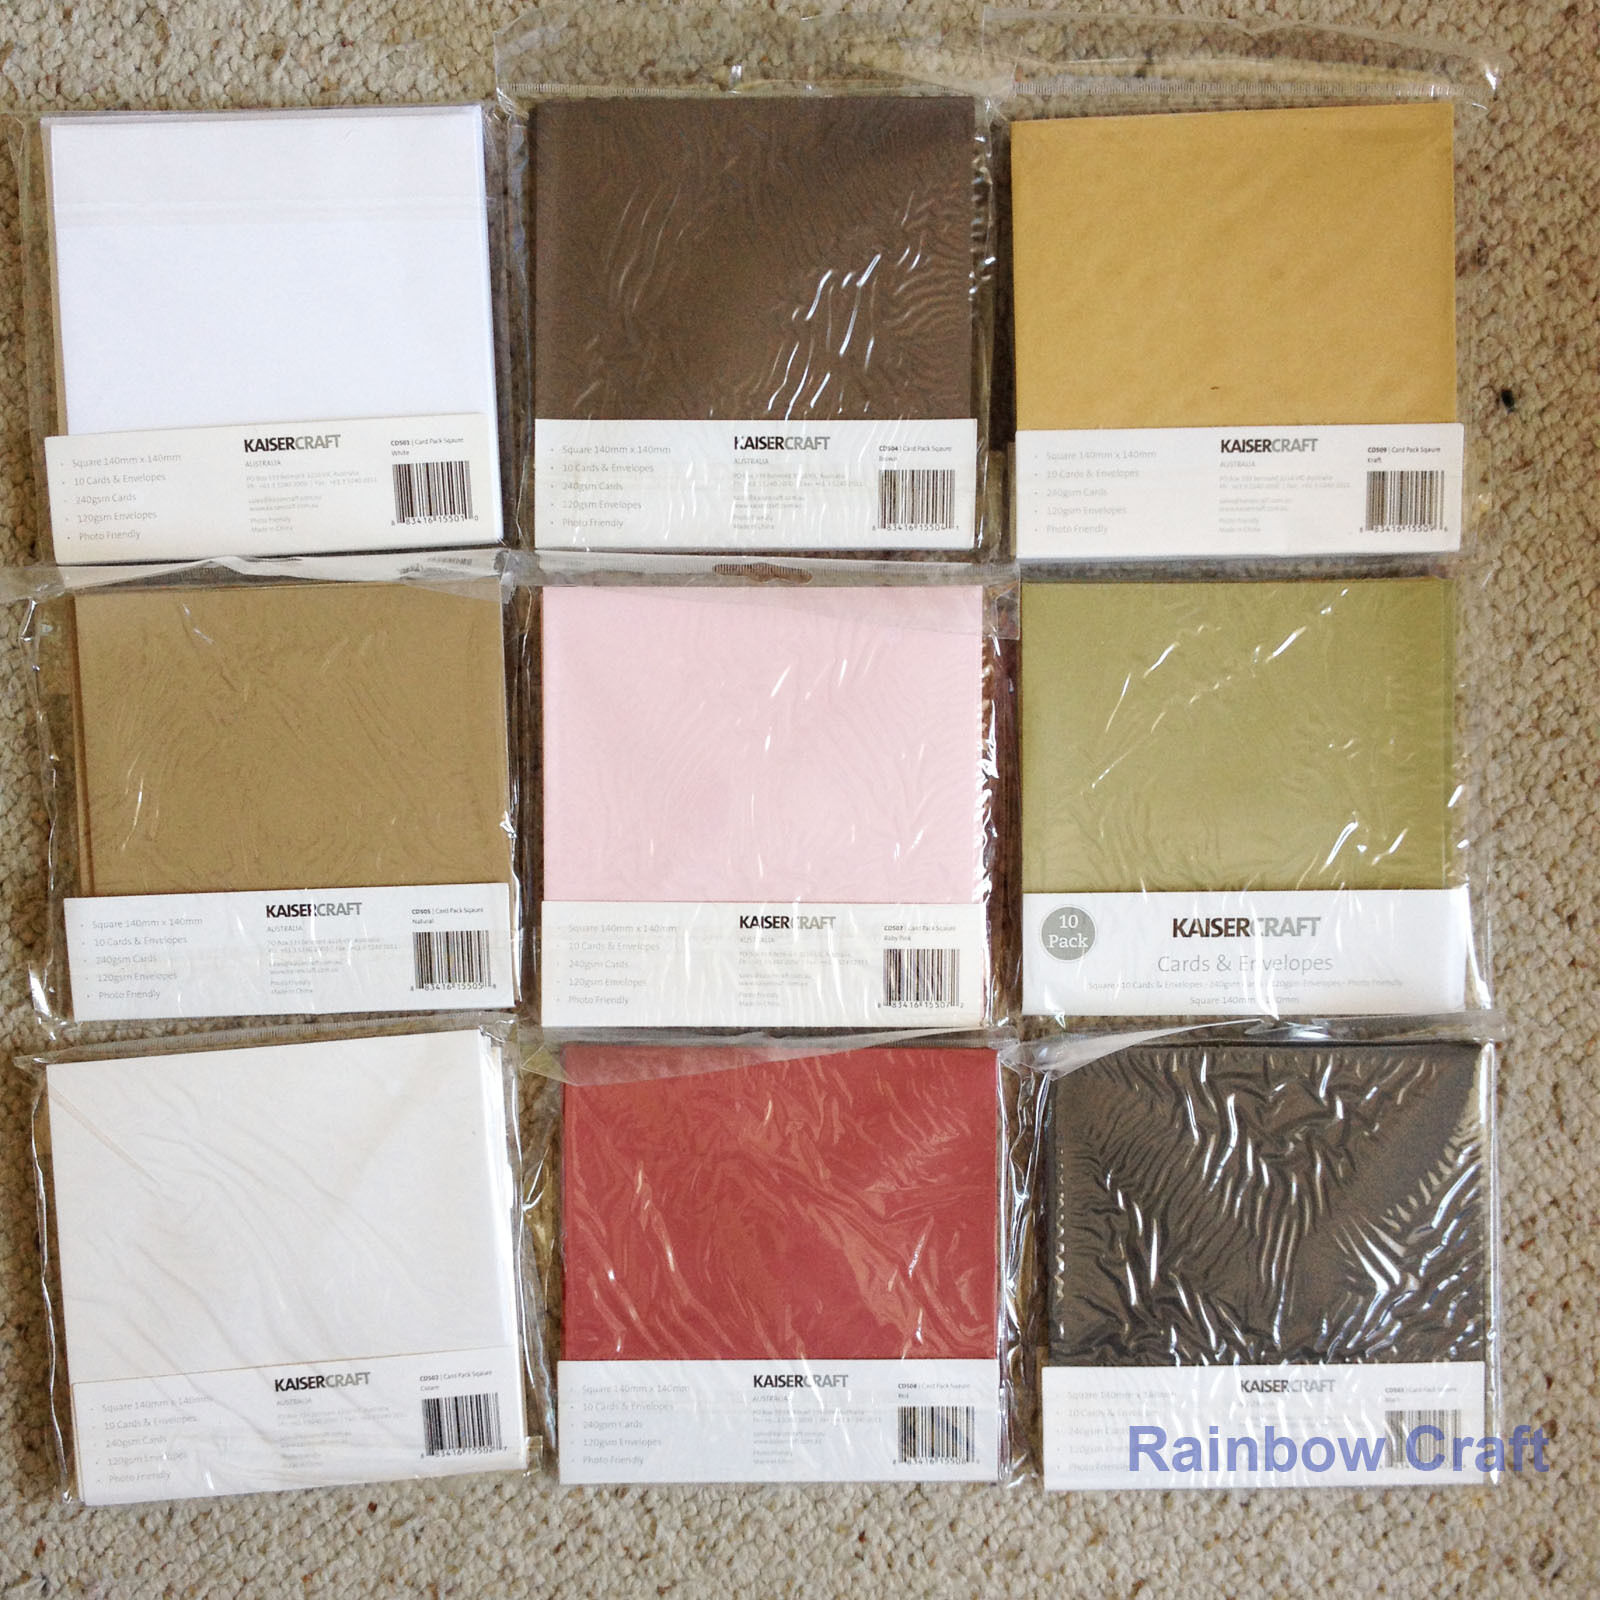 Kaisercraft 10 blank Cards & Envelopes Square / C6 size (12 selections)